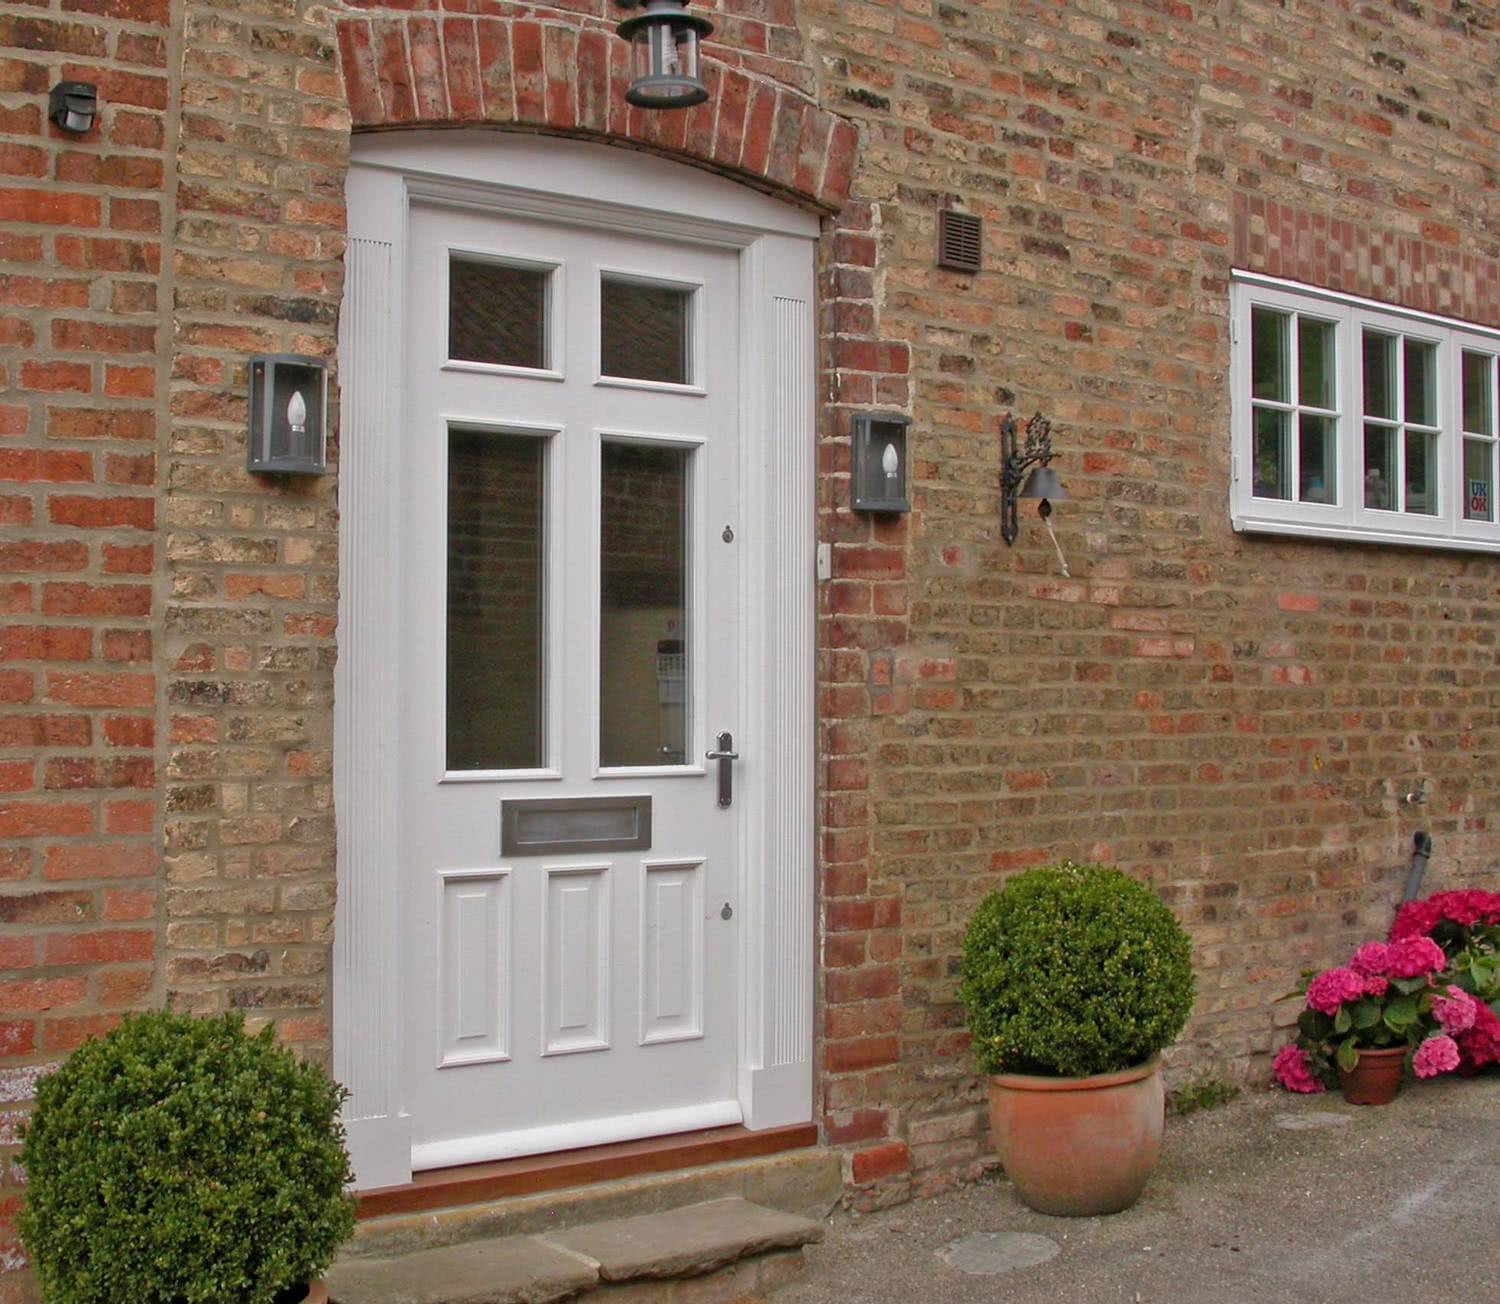 Exterior view of bespoke fitted meranti hardwood door with four double glazed windows and with three raised panels